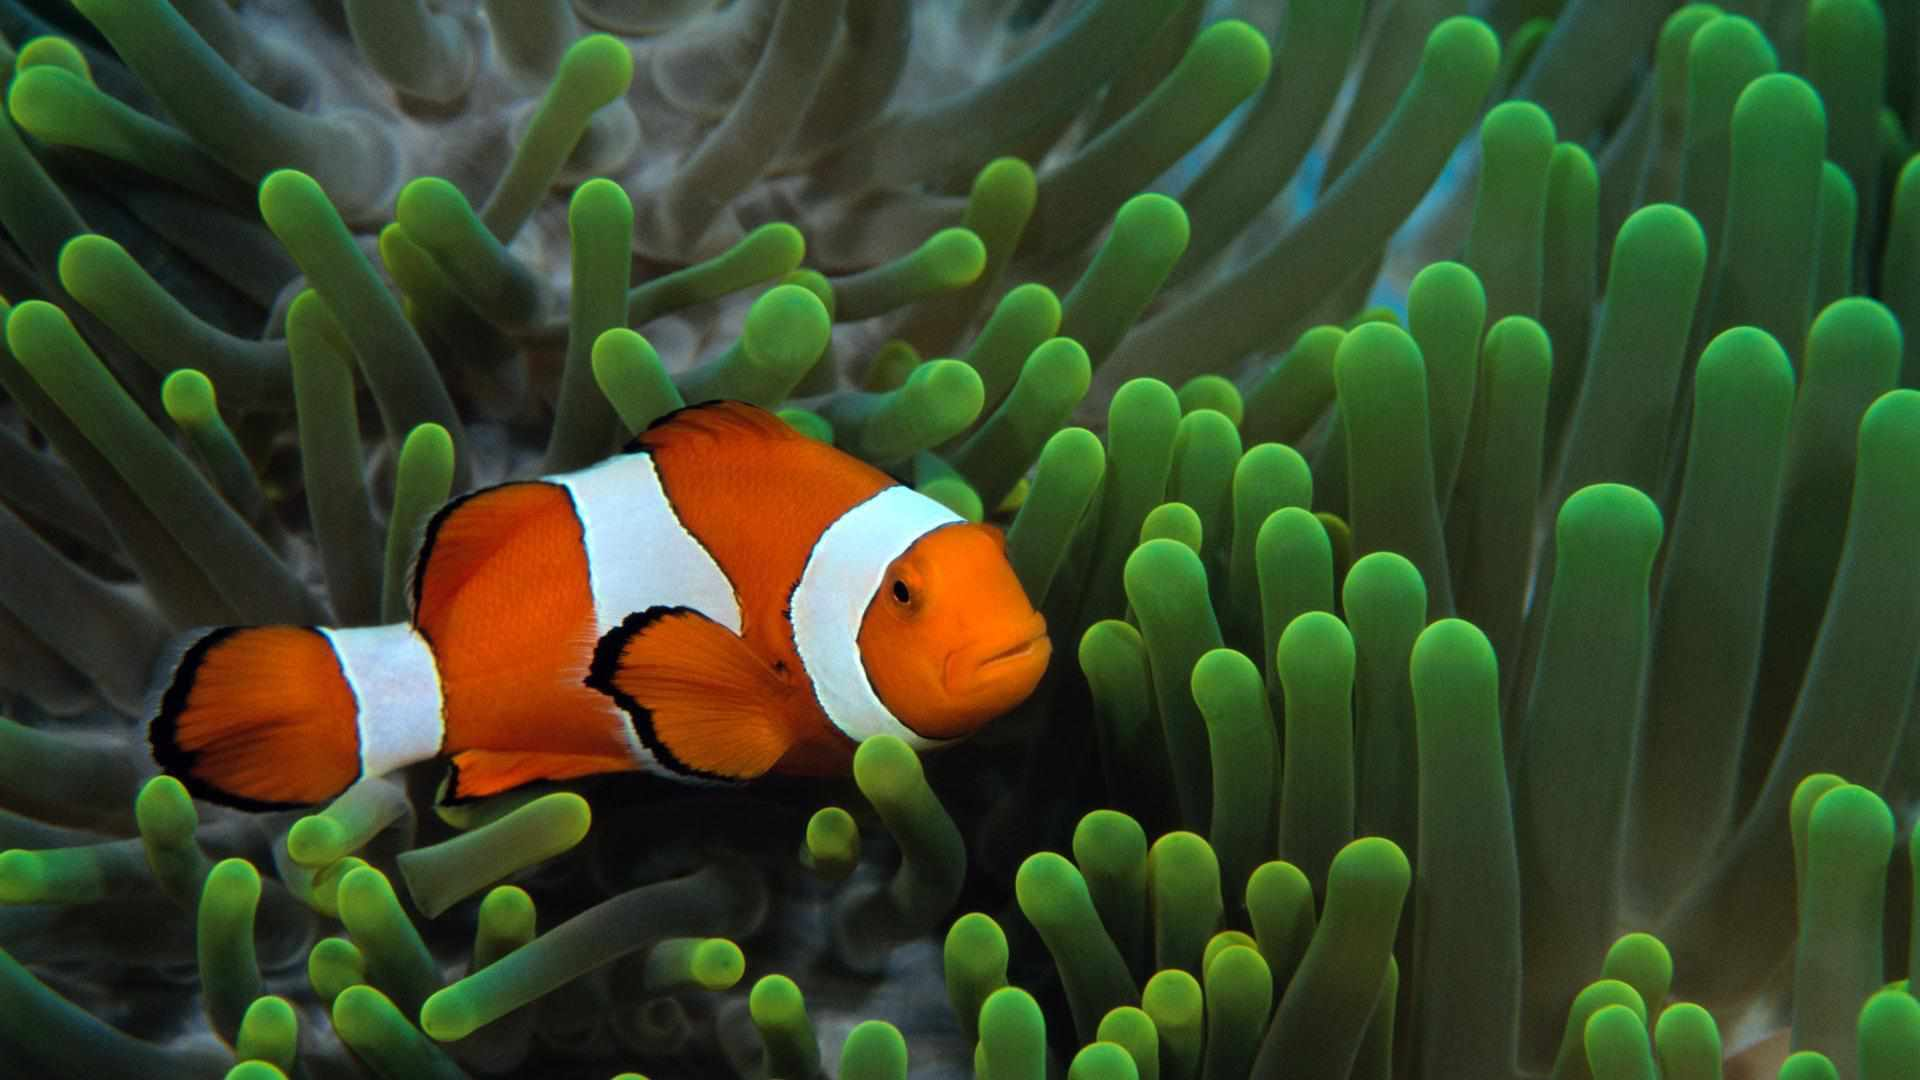 Free ocean wallpaper featuring a clownfish in anenome